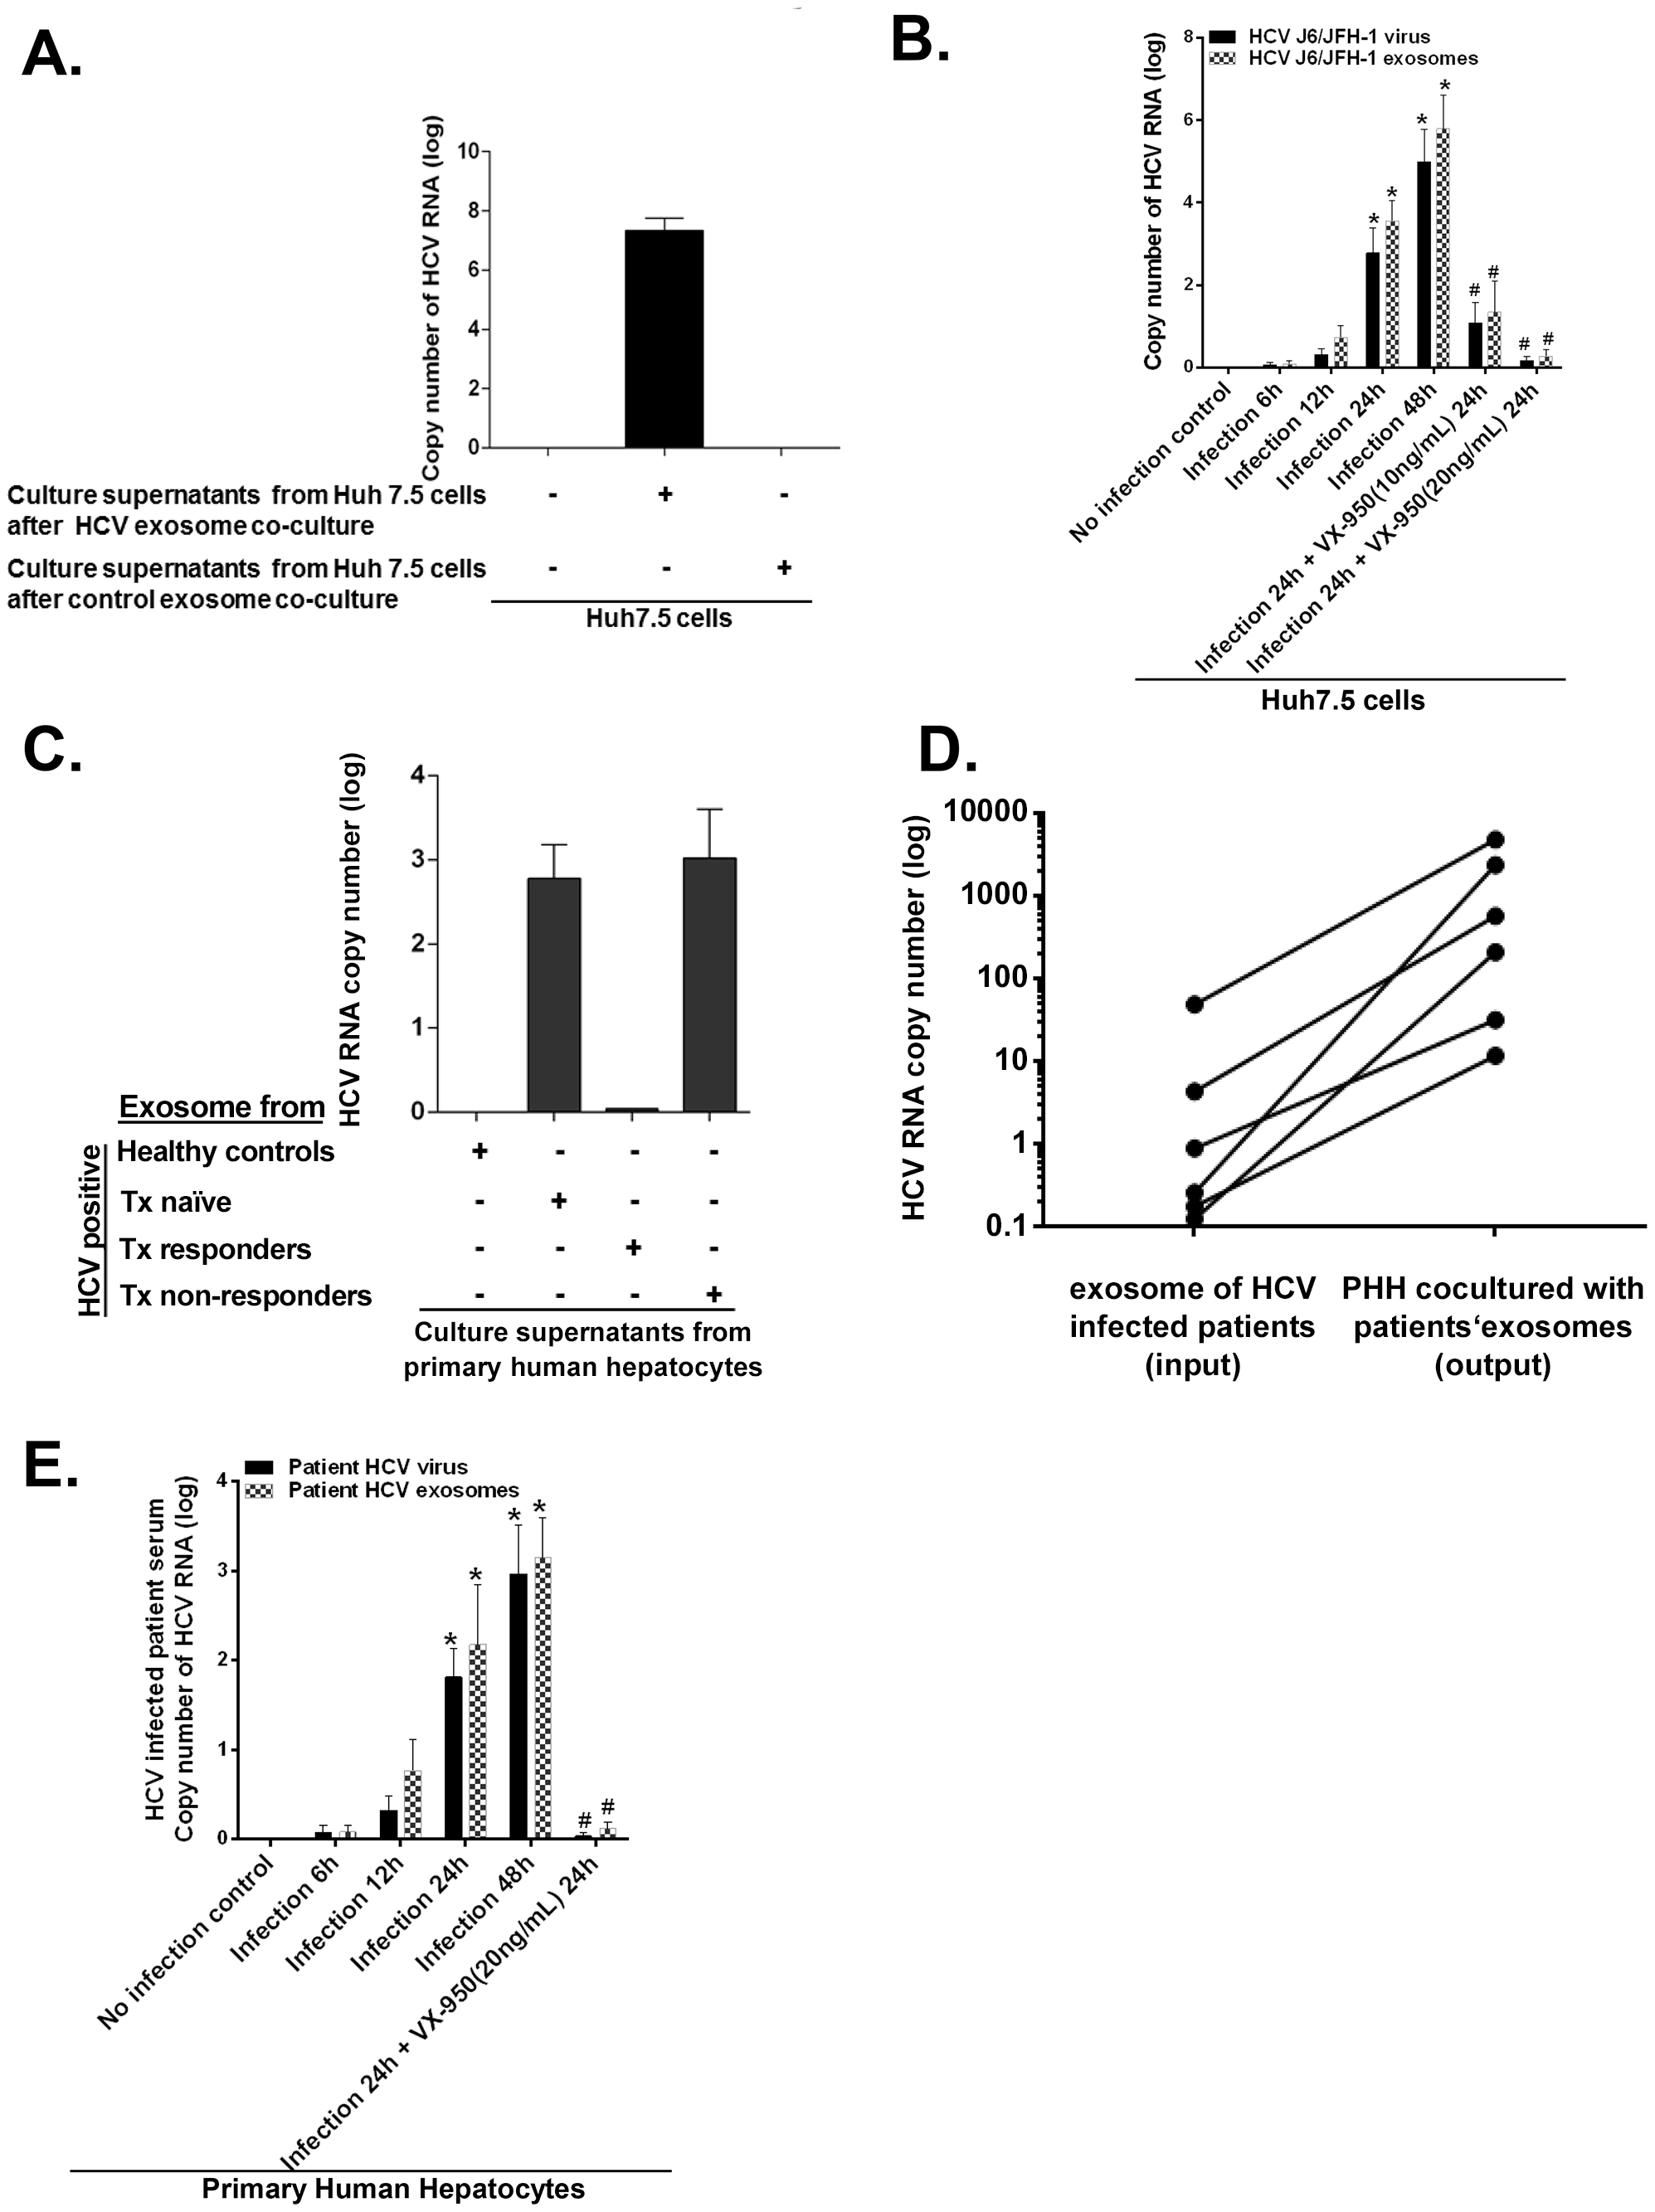 Exosomes from HCV J6/JFH-1 infected Huh7.5 cells transmit HCV infection to the human hepatoma cell line (Huh7.5 cells) and exosomes from HCV infected patients' serum transmit HCV infection to primary human hepatocytes.